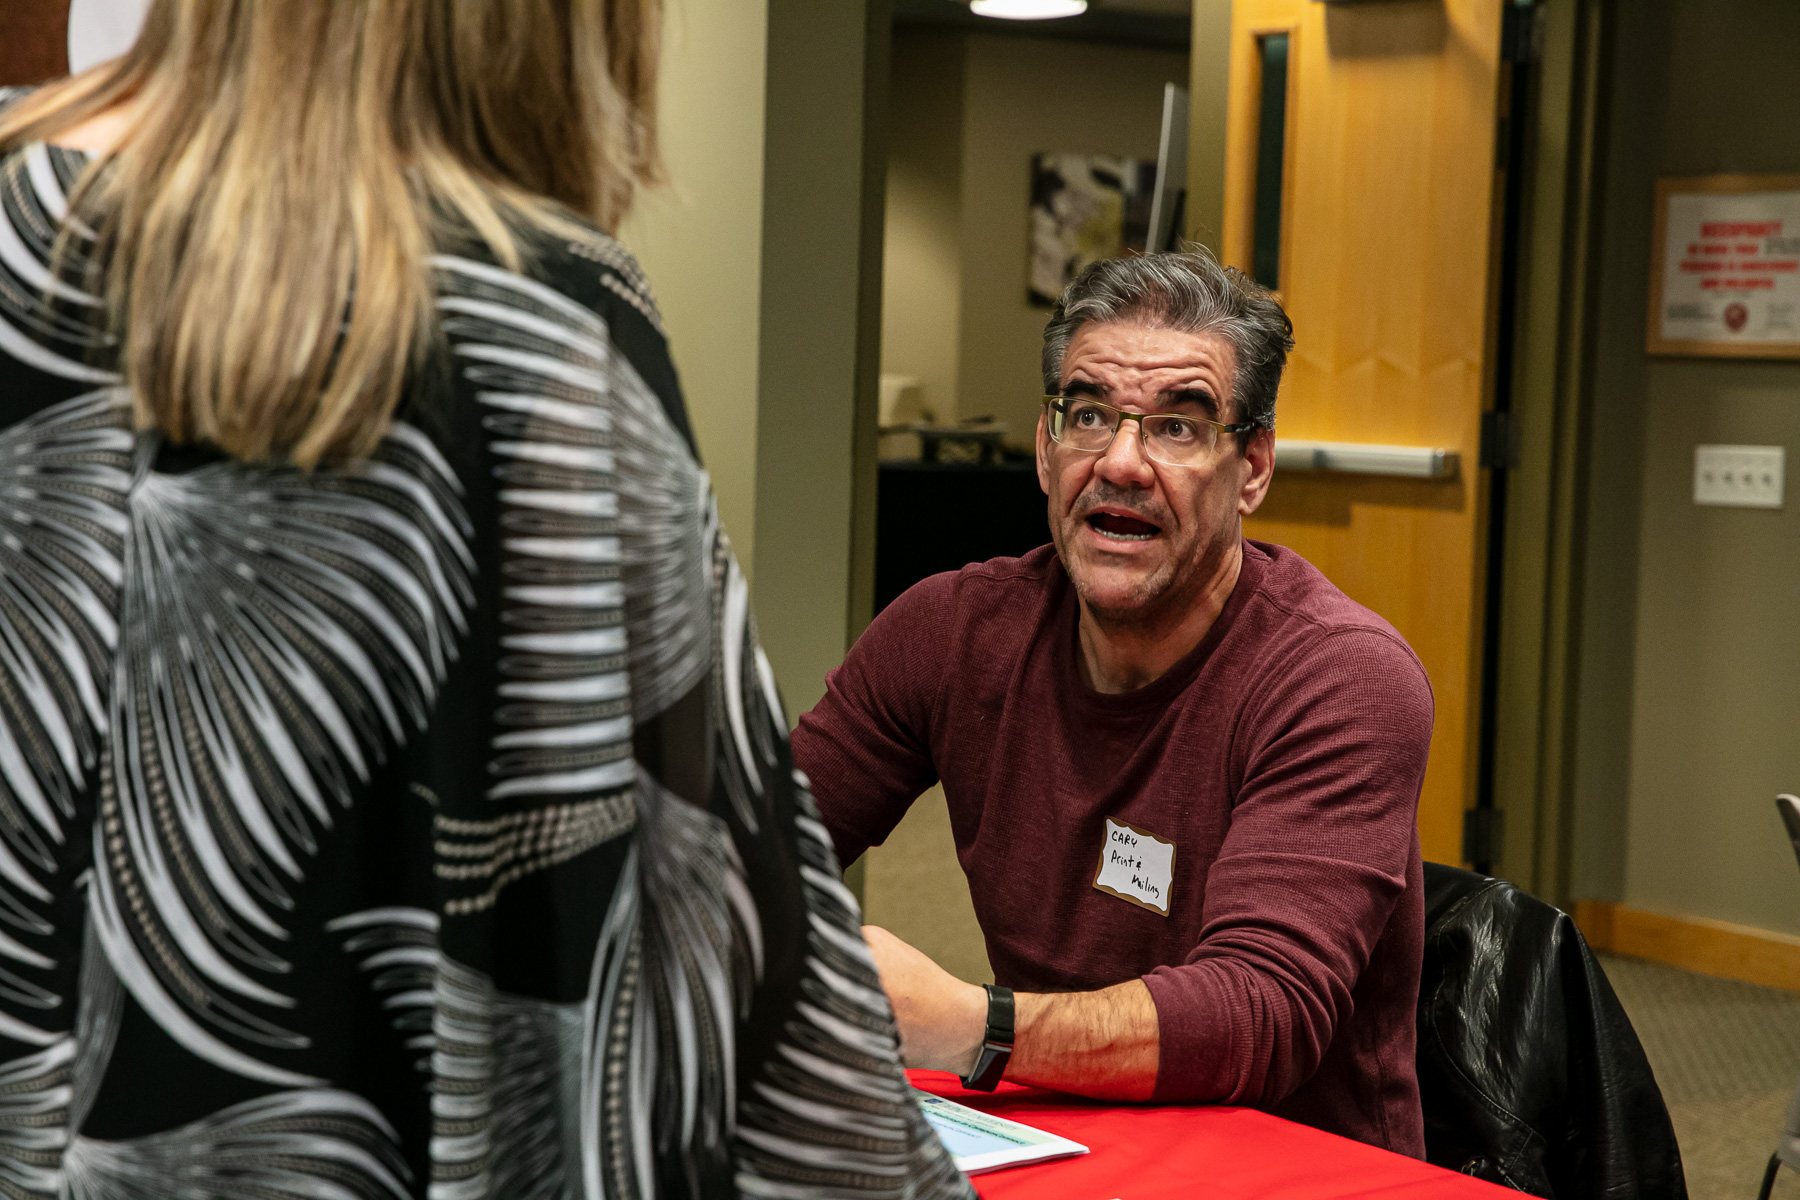 Department represetatives were present in providing information for services like print and mailing resources that adjunct faculty can utilize for their applicable course needs. (DePaul University/Randall Spriggs)